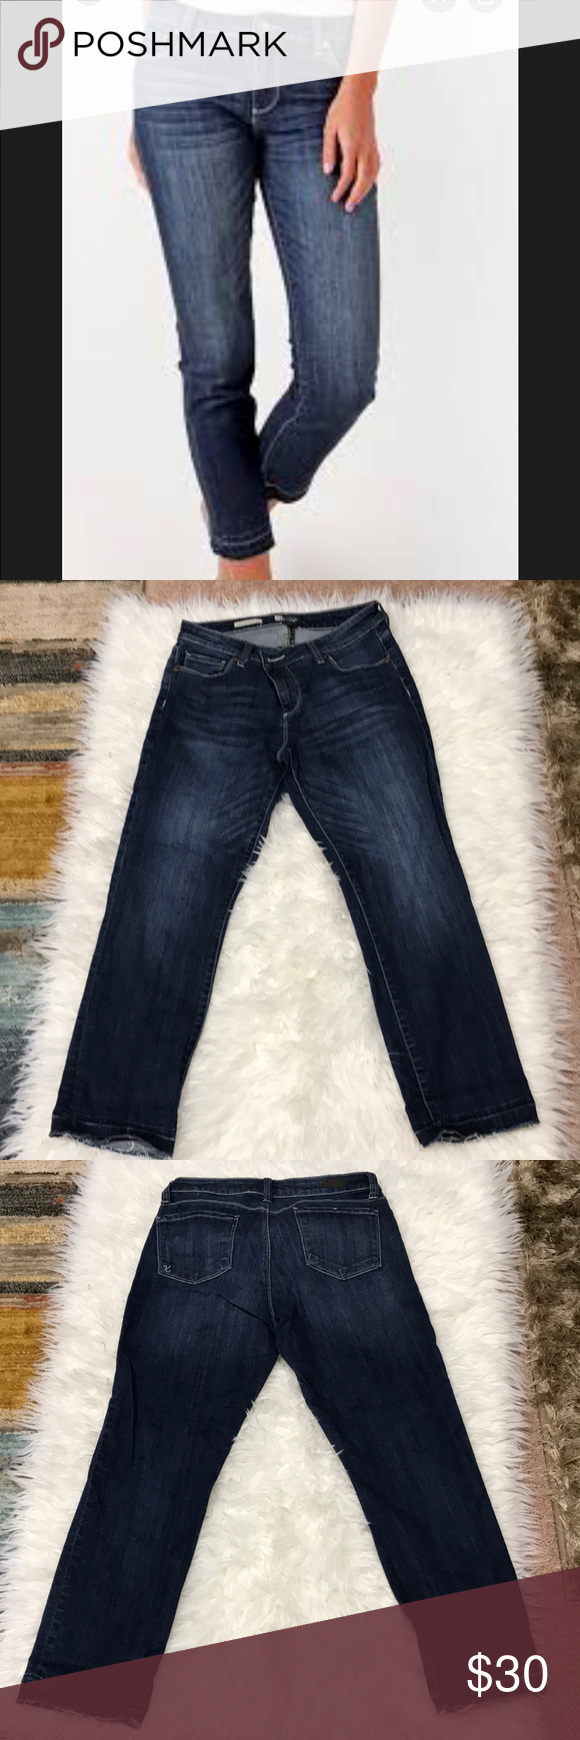 Kut From The Kloth Reese Ankle Straight Leg Jeans Straight Leg Jeans Kut From The Kloth Straight Leg